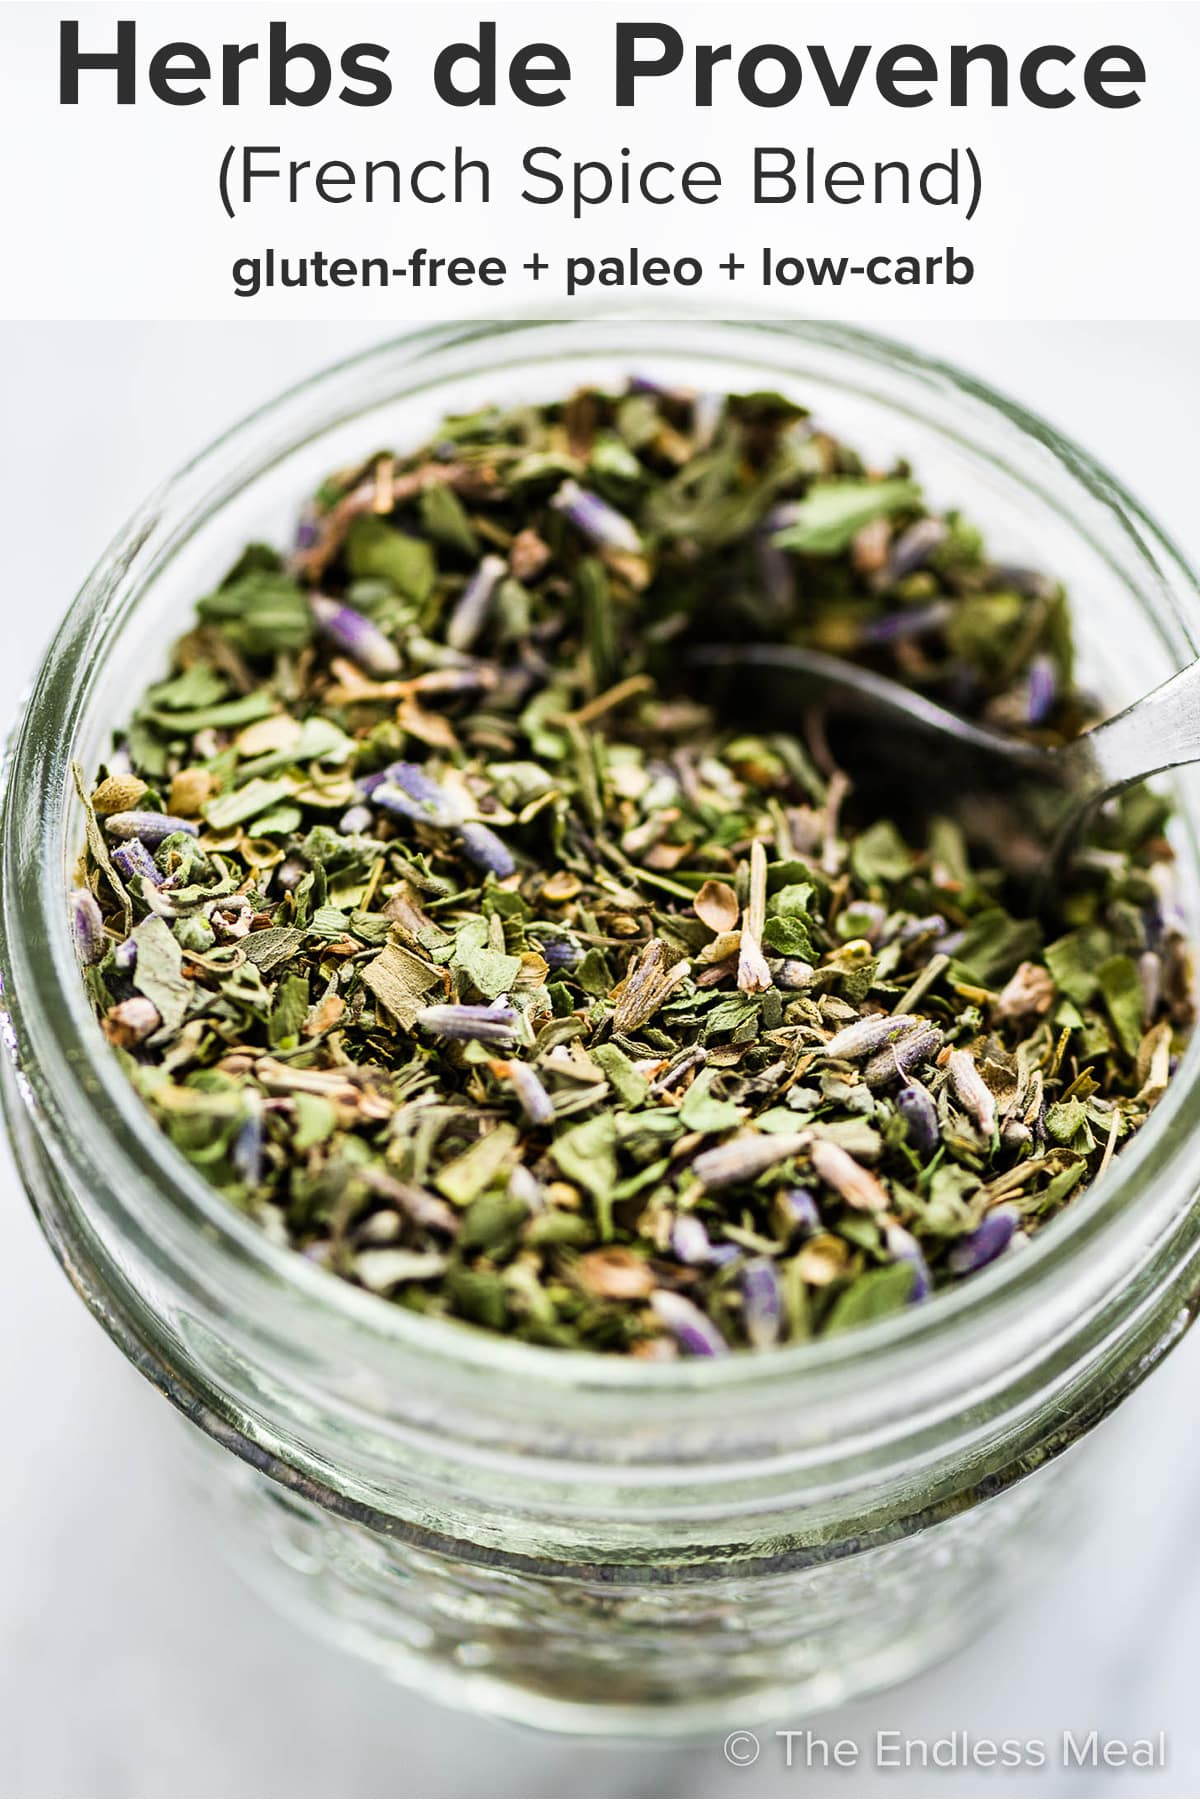 A jar of herbs de provence with a spoon inside and the recipe title on top of the picture.